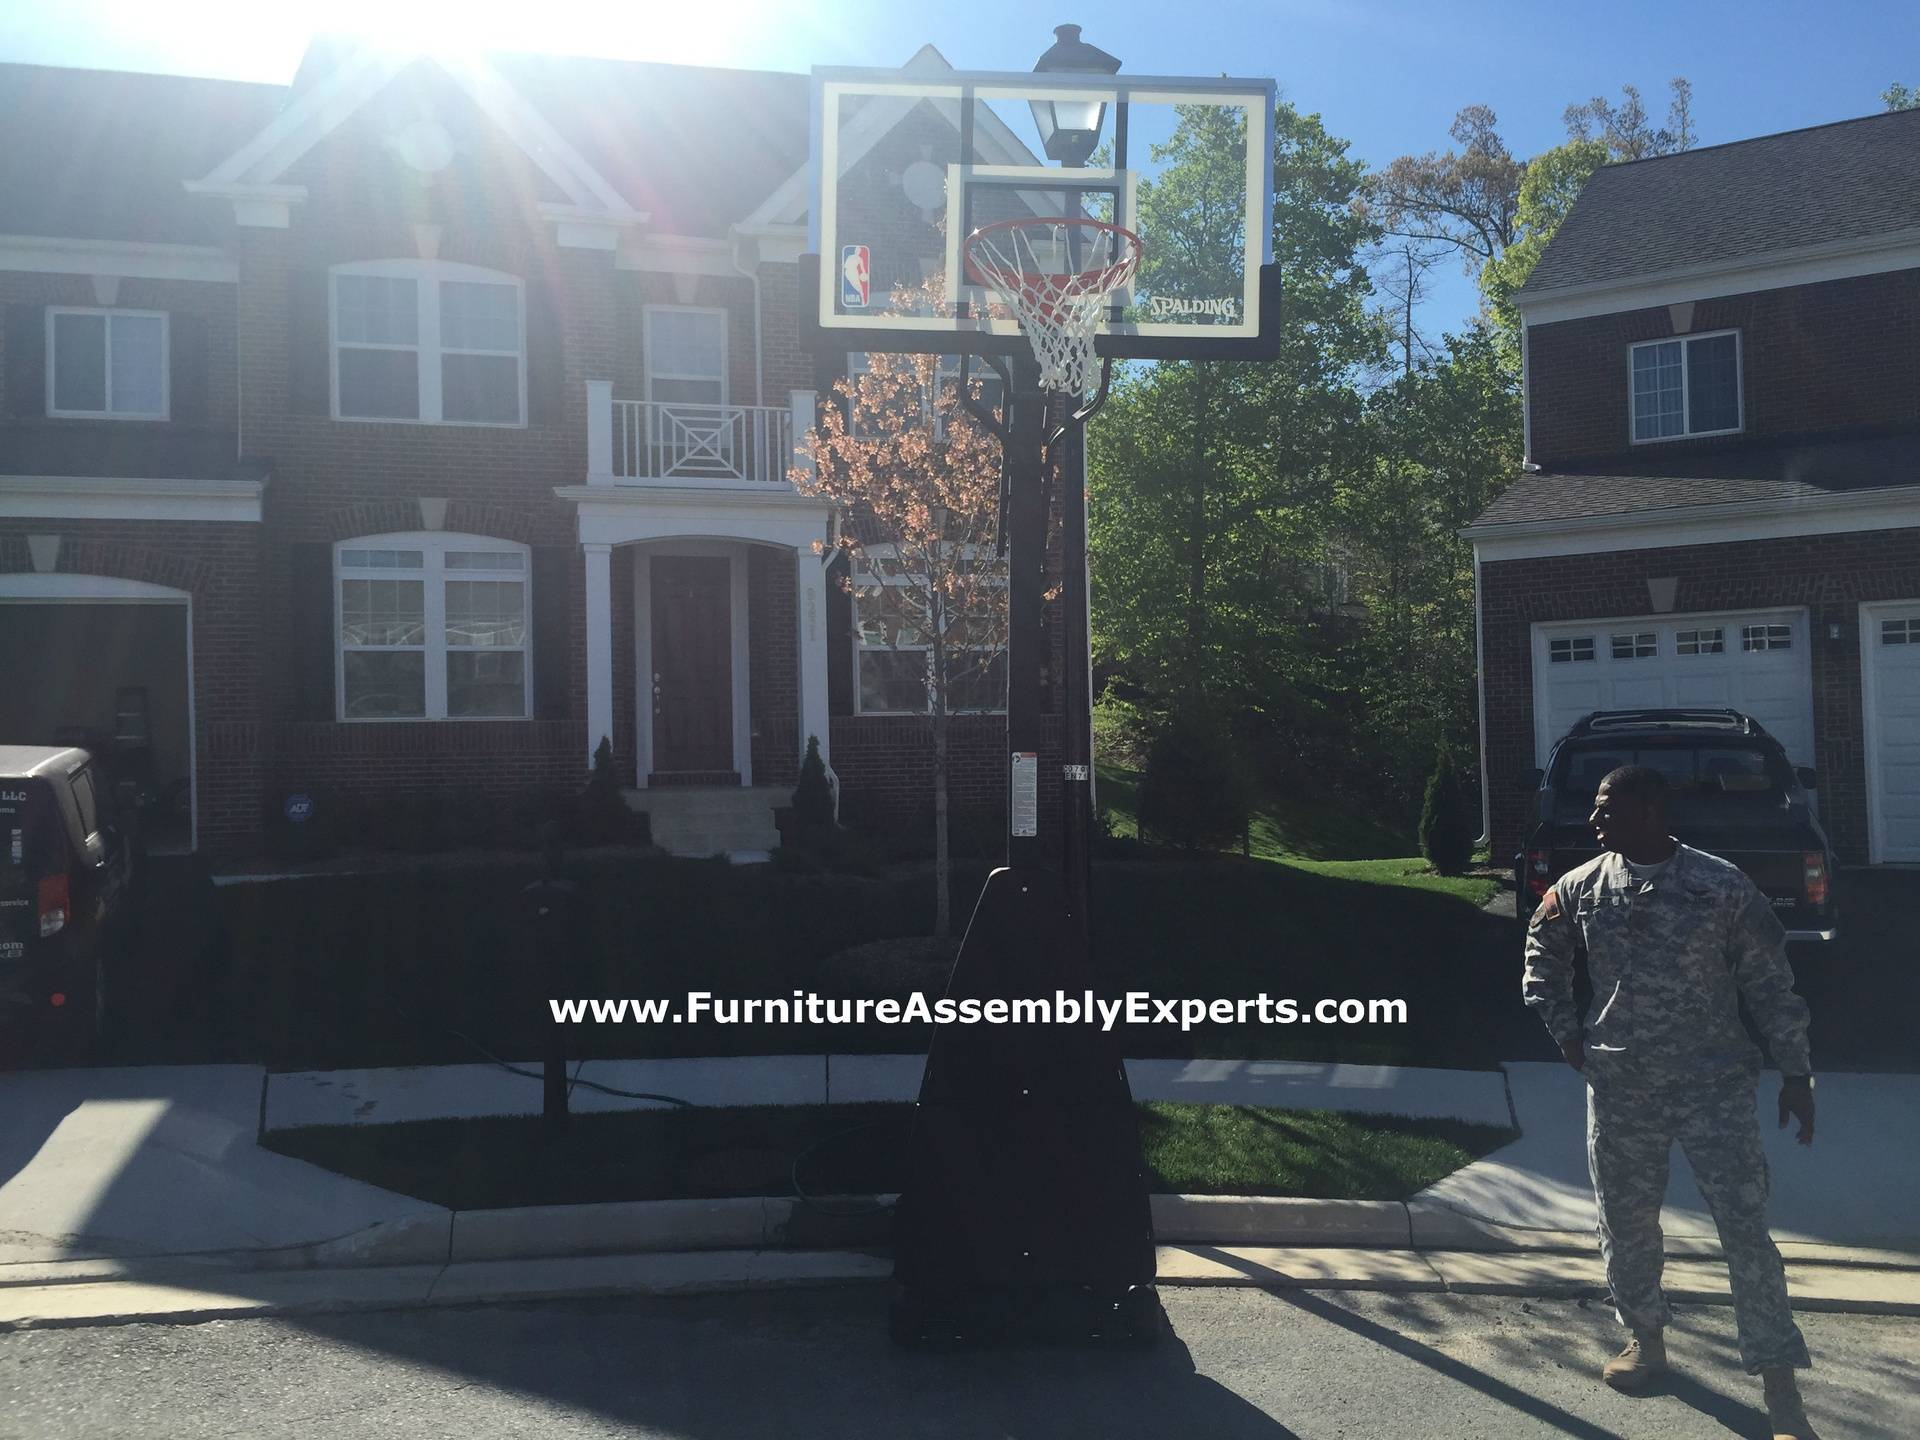 walmart portable basketball hoop assembly service in lorton va